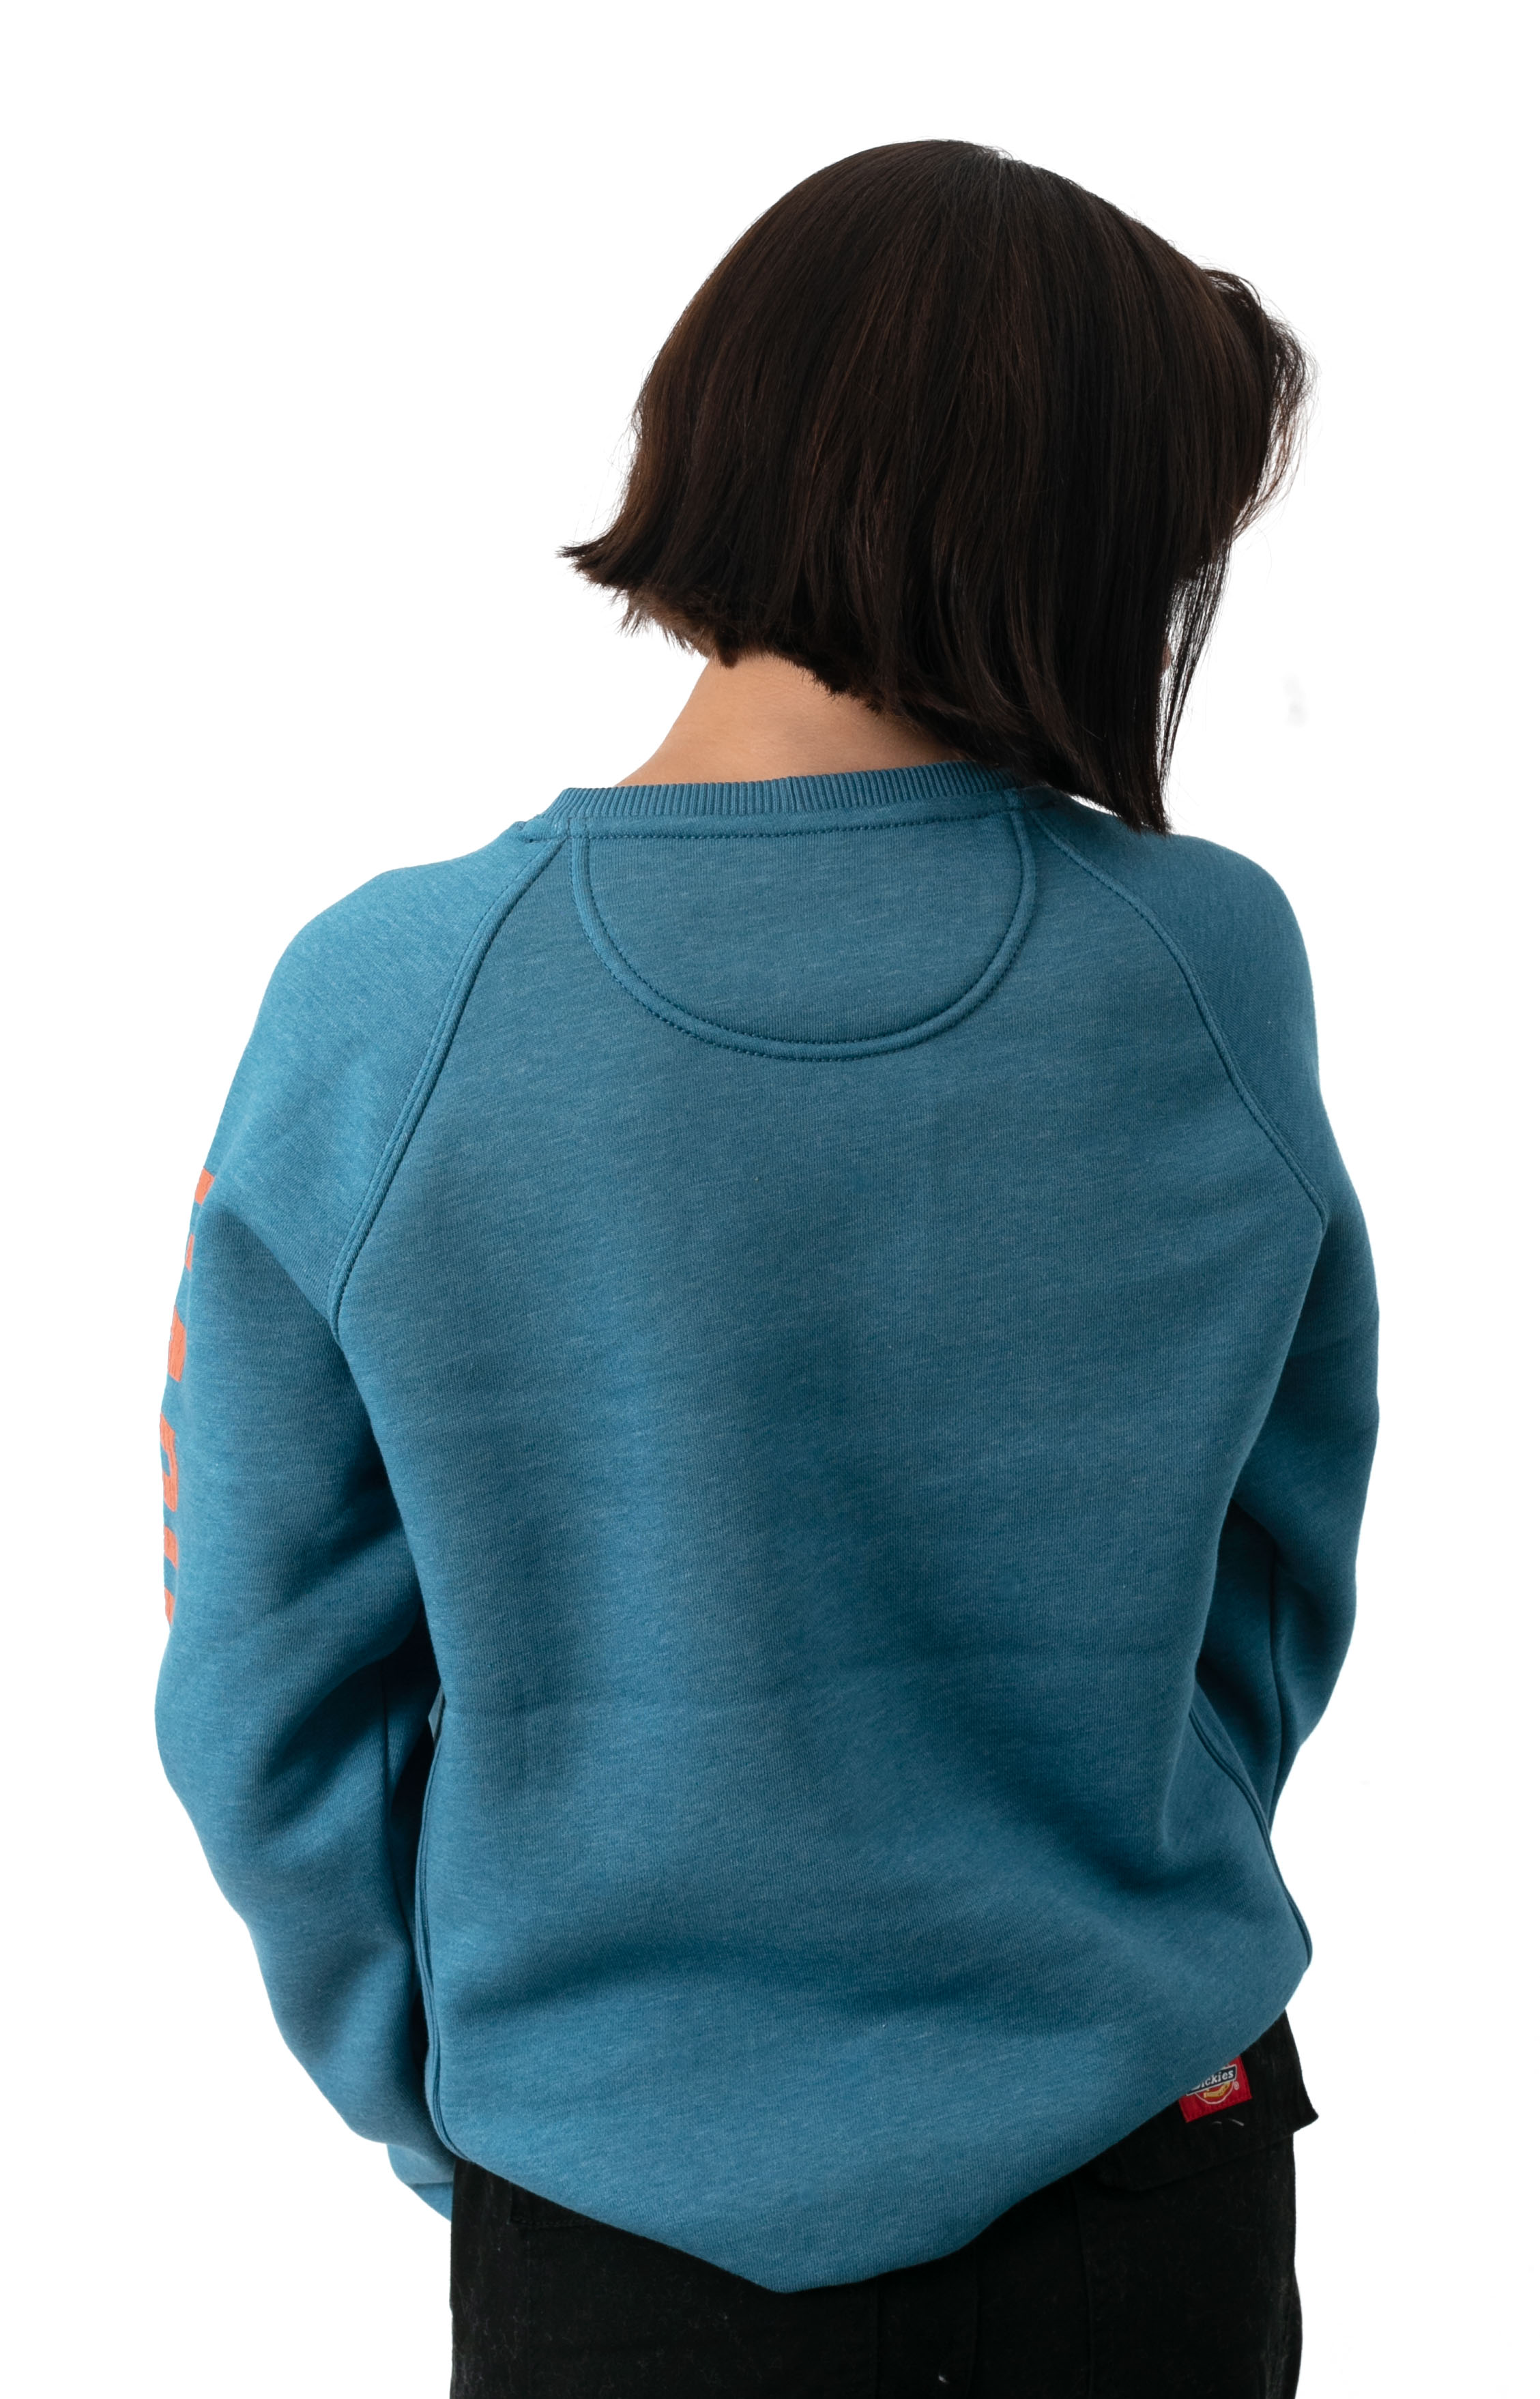 (104410) Relaxed Fit MW Graphic Sweatshirt - Ocean Blue Heather   3